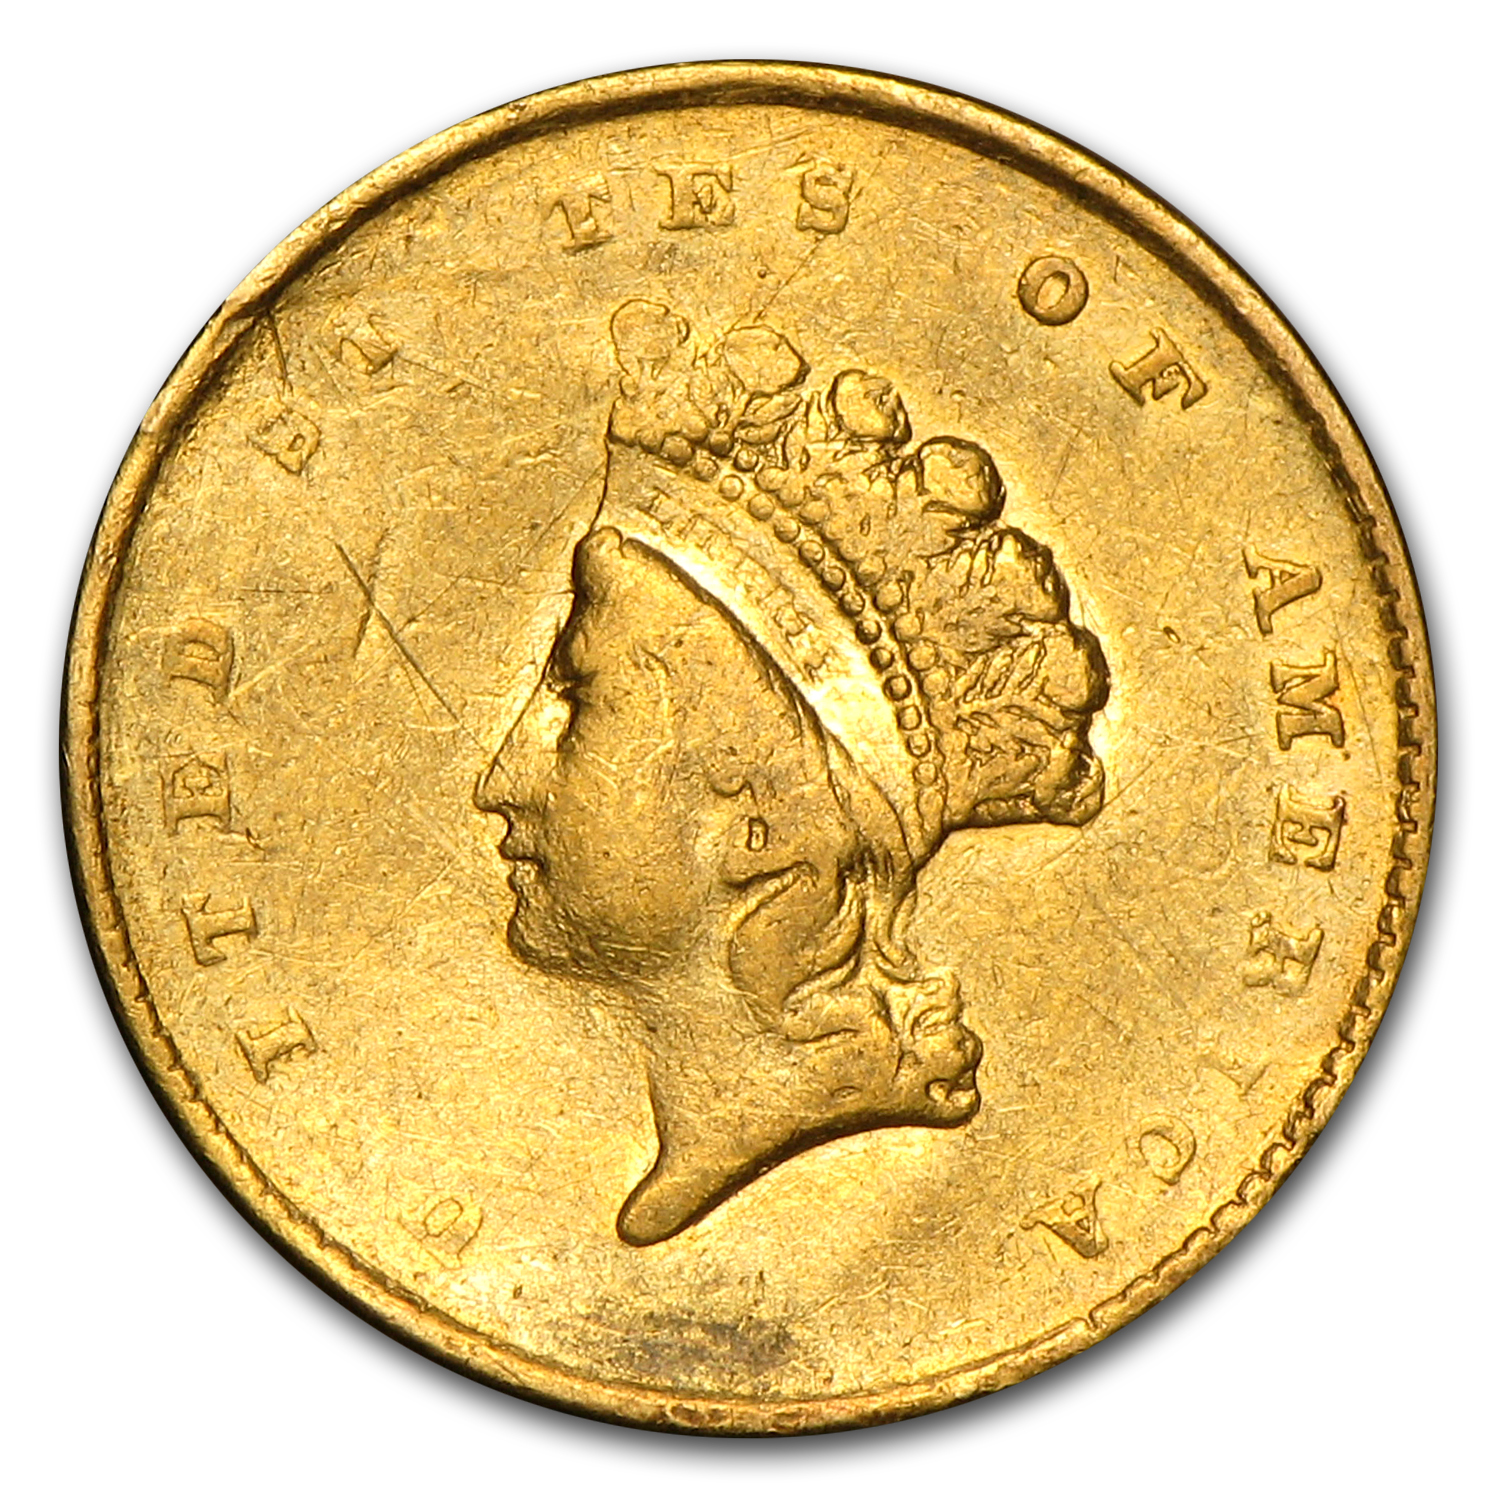 $1 Indian Head Gold Type 2 (Heavily Damaged)